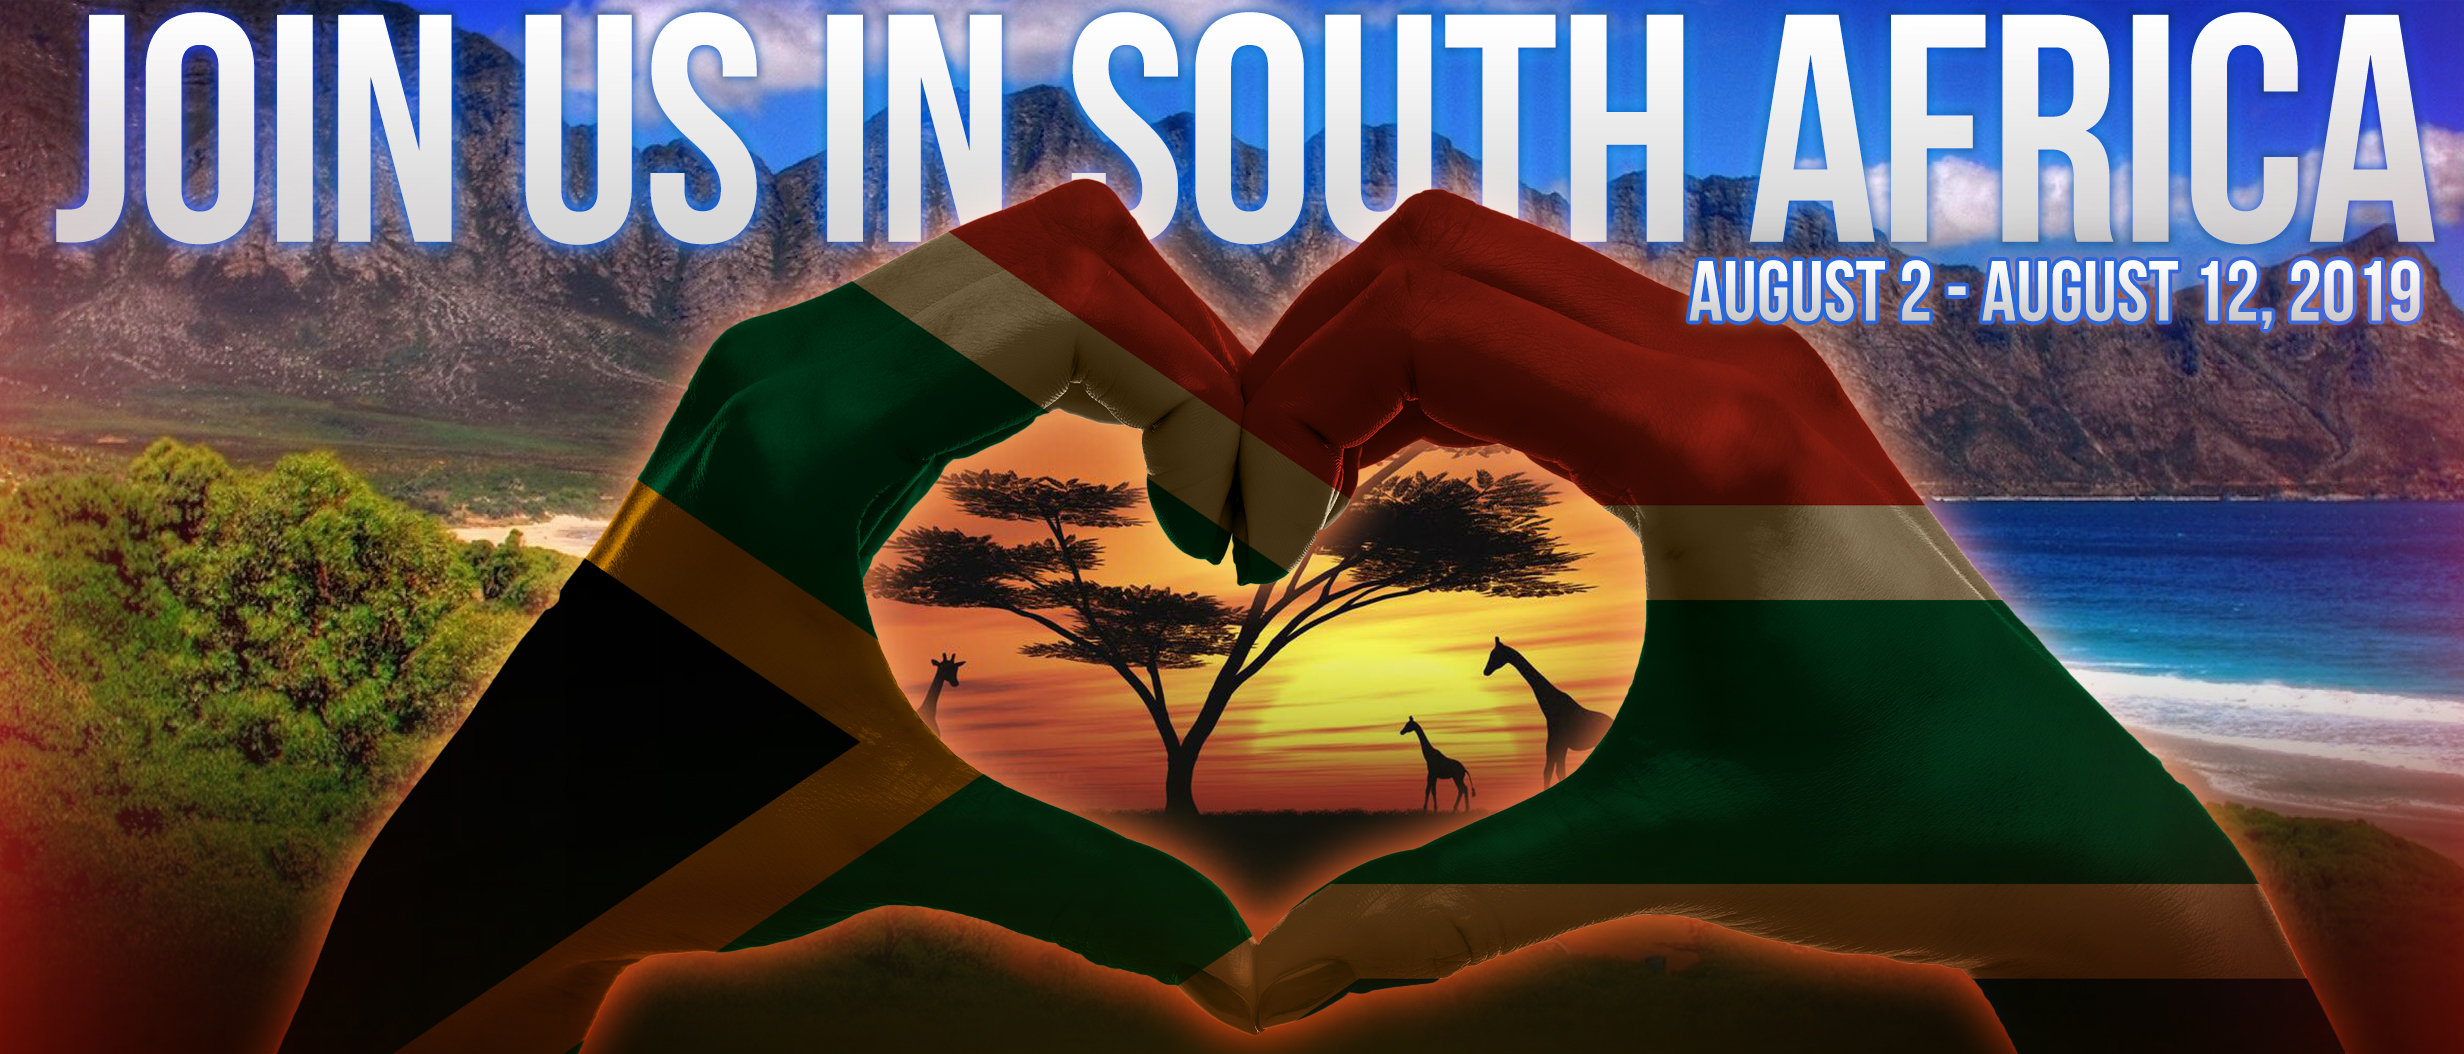 We're going to South Africa